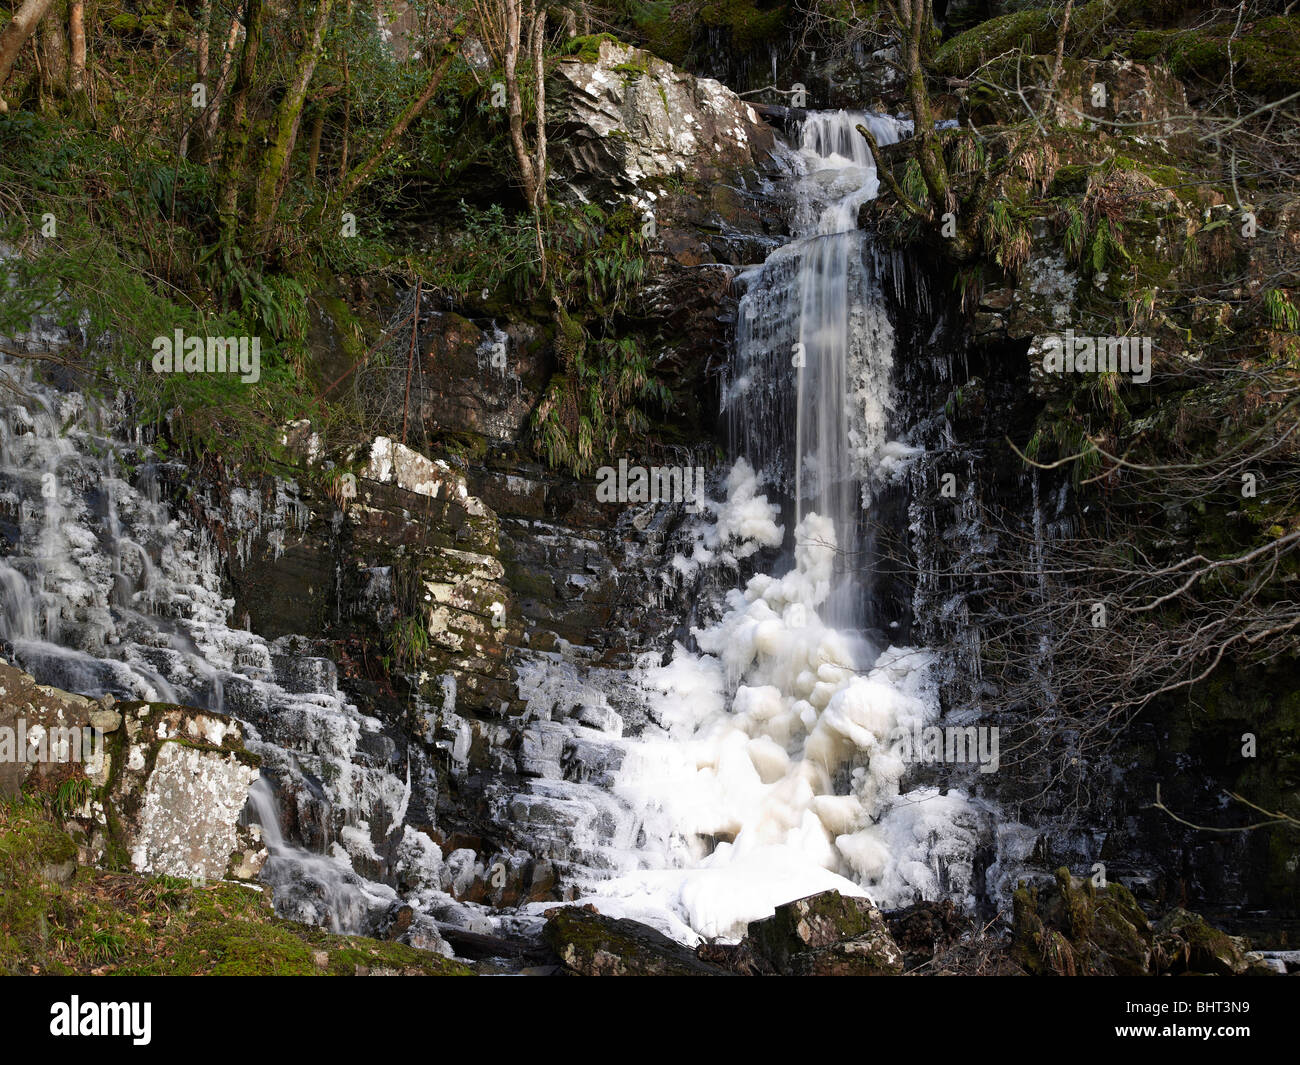 Frozen Waterfall, Lael, Nr Ullapool, Wester Ross, Highland Scotland Stock Photo